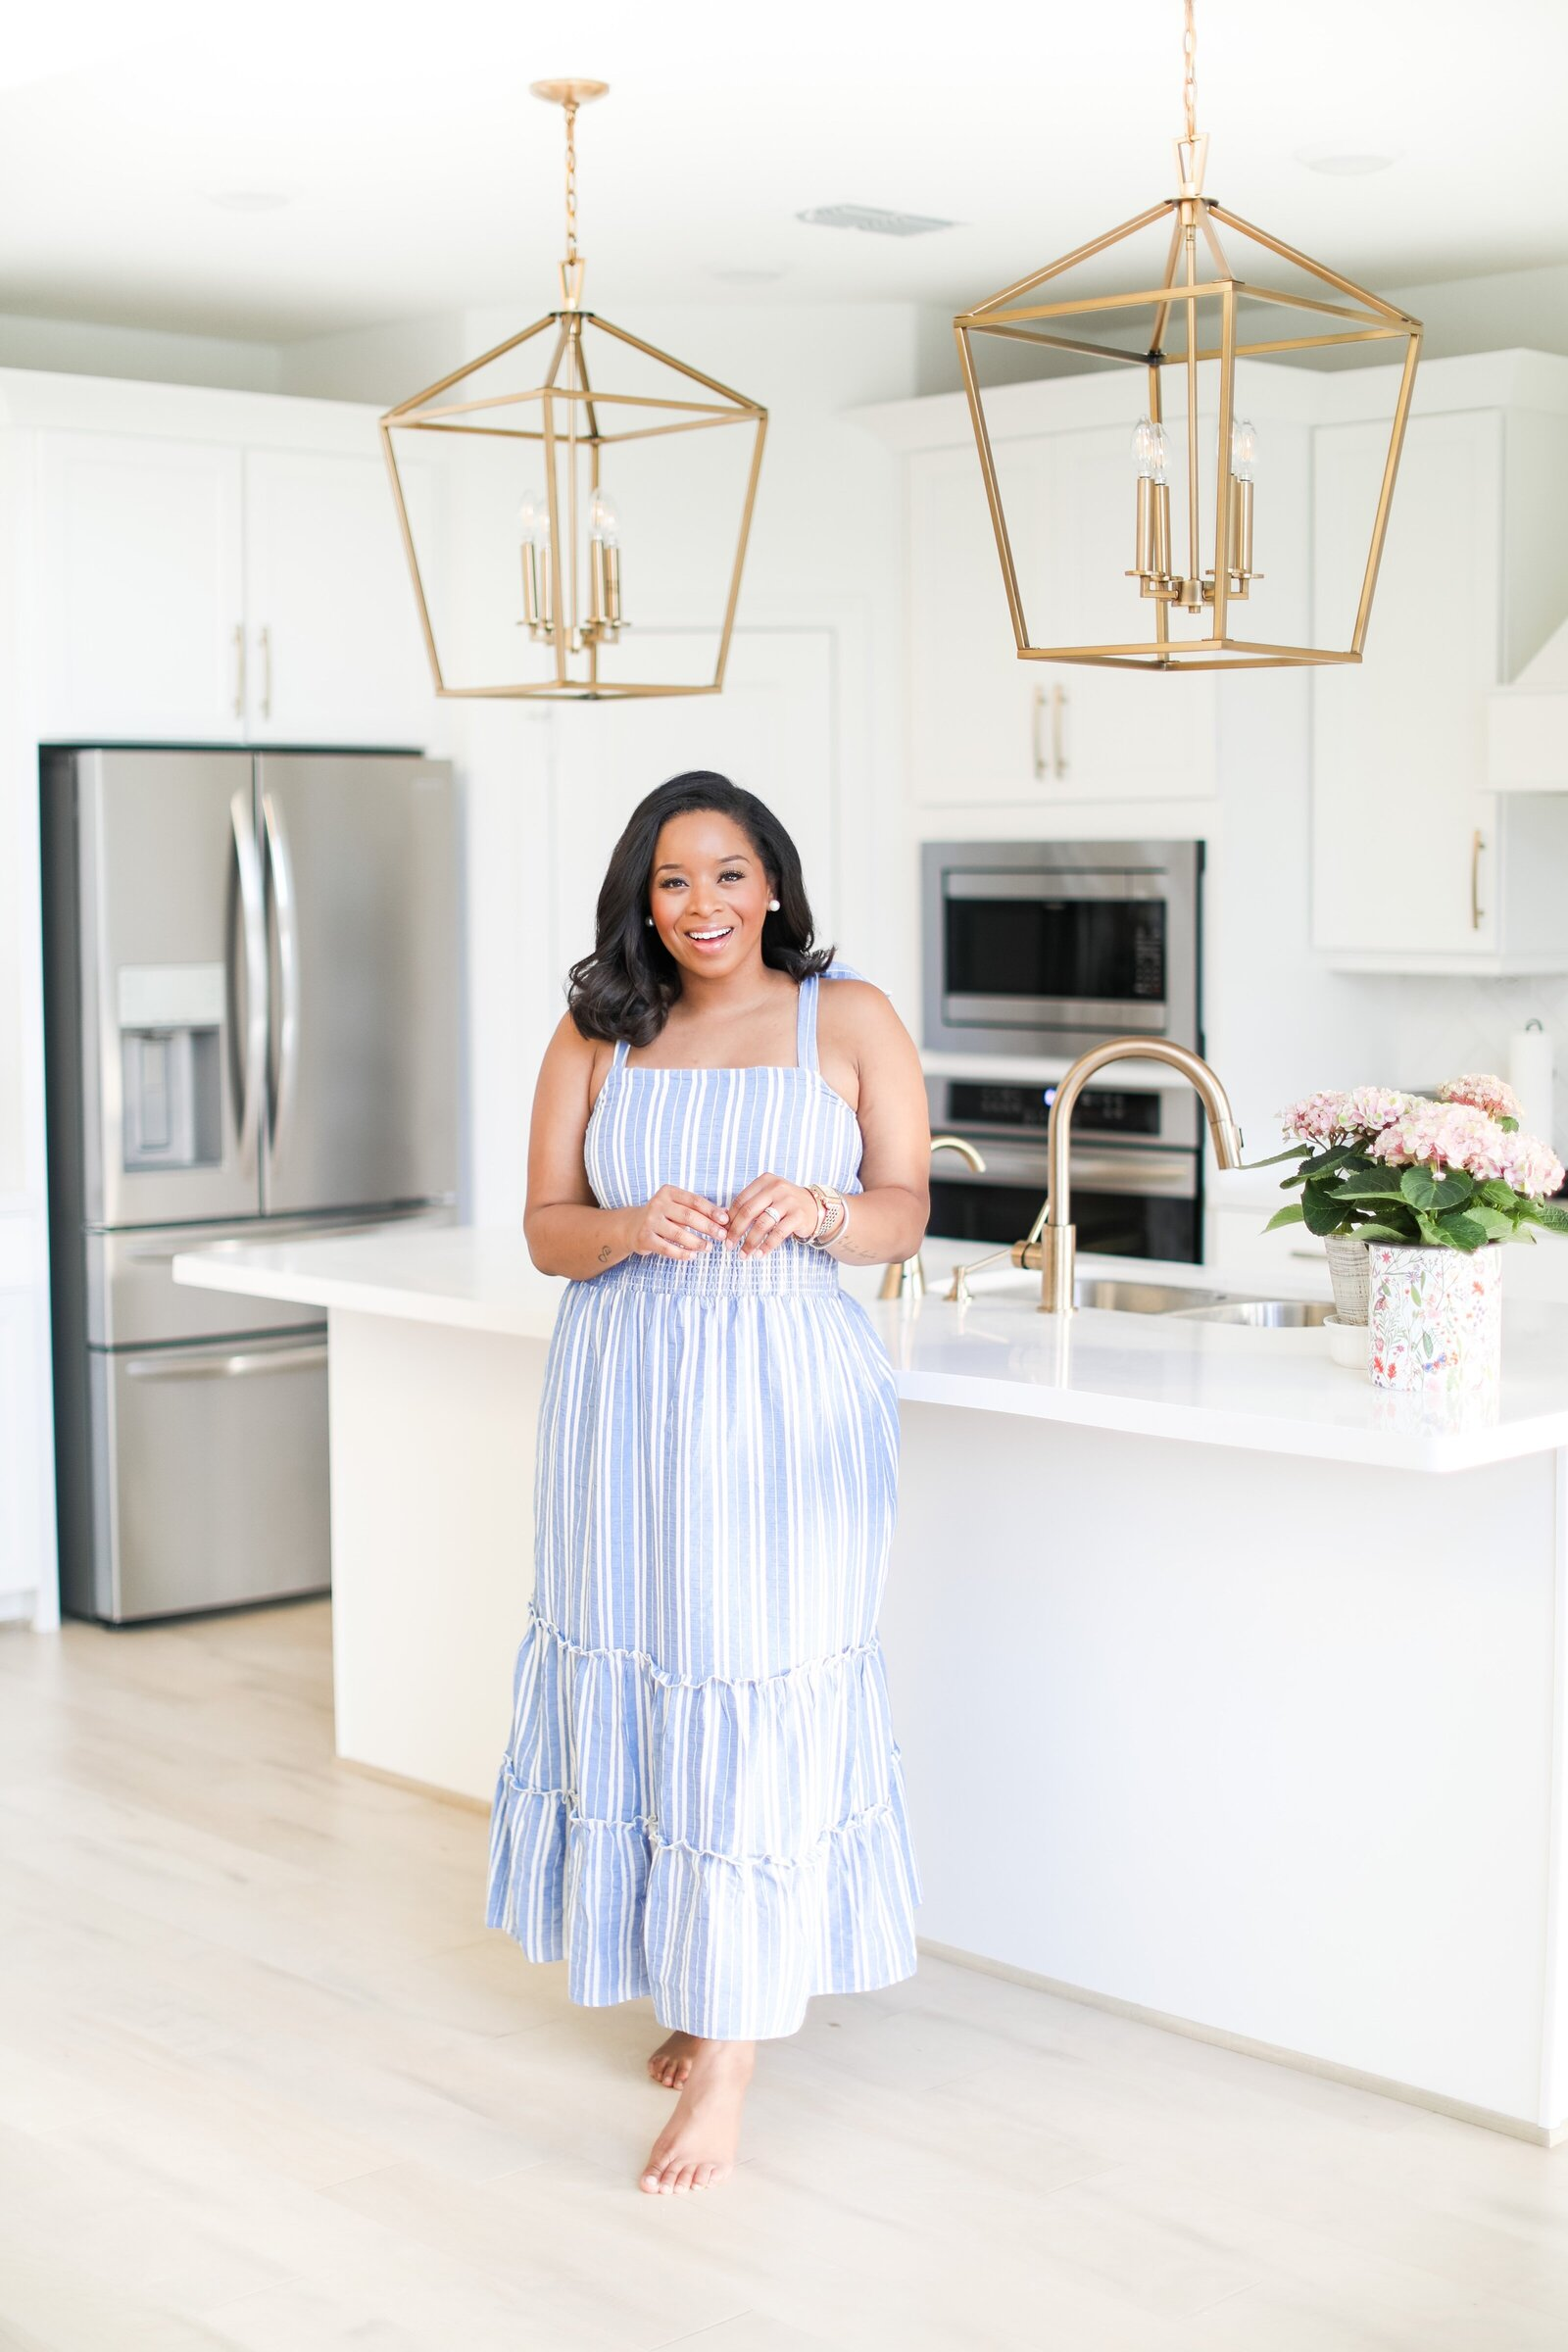 Carmen Renee - Houston Texas Lifestyle Beauty Style Decor Motherhood Blogger - 25